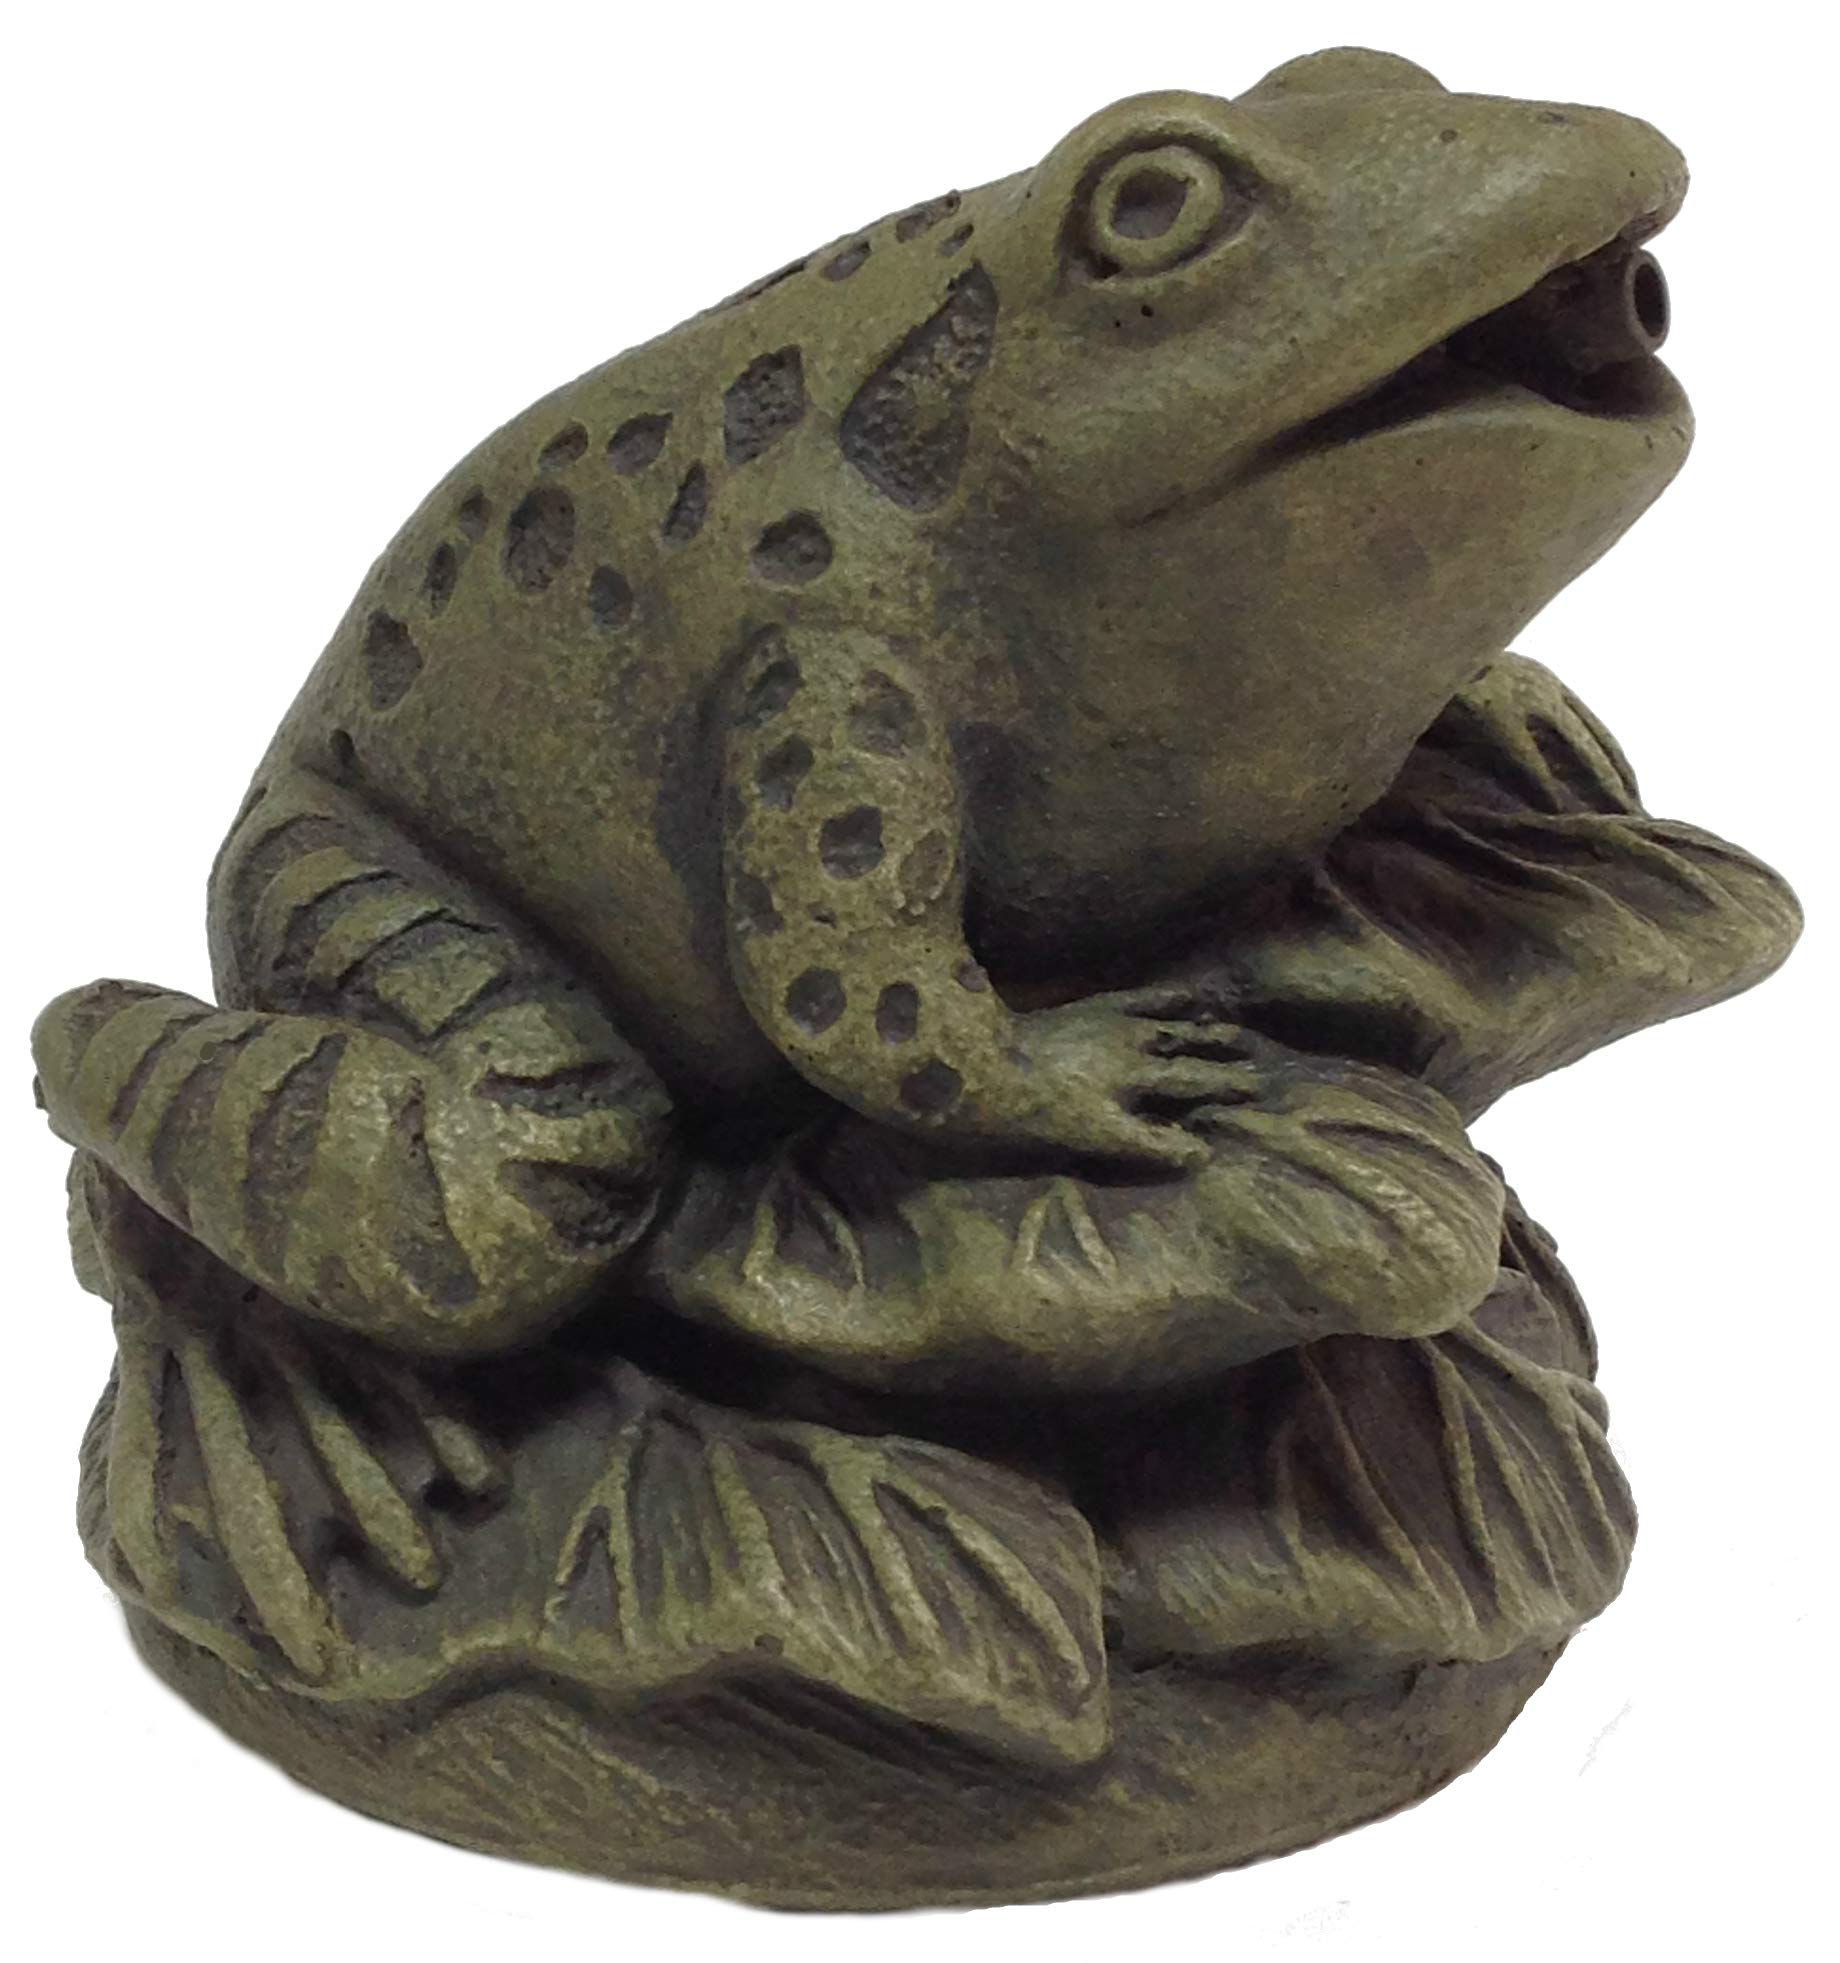 Massarelli's Frog On Leaves Plumbed Spitter - Solid Cast Stone Lifelike Statue, Great Pond and Garden Gift Idea, Durable and Fun Sculpture Art by Massarelli's